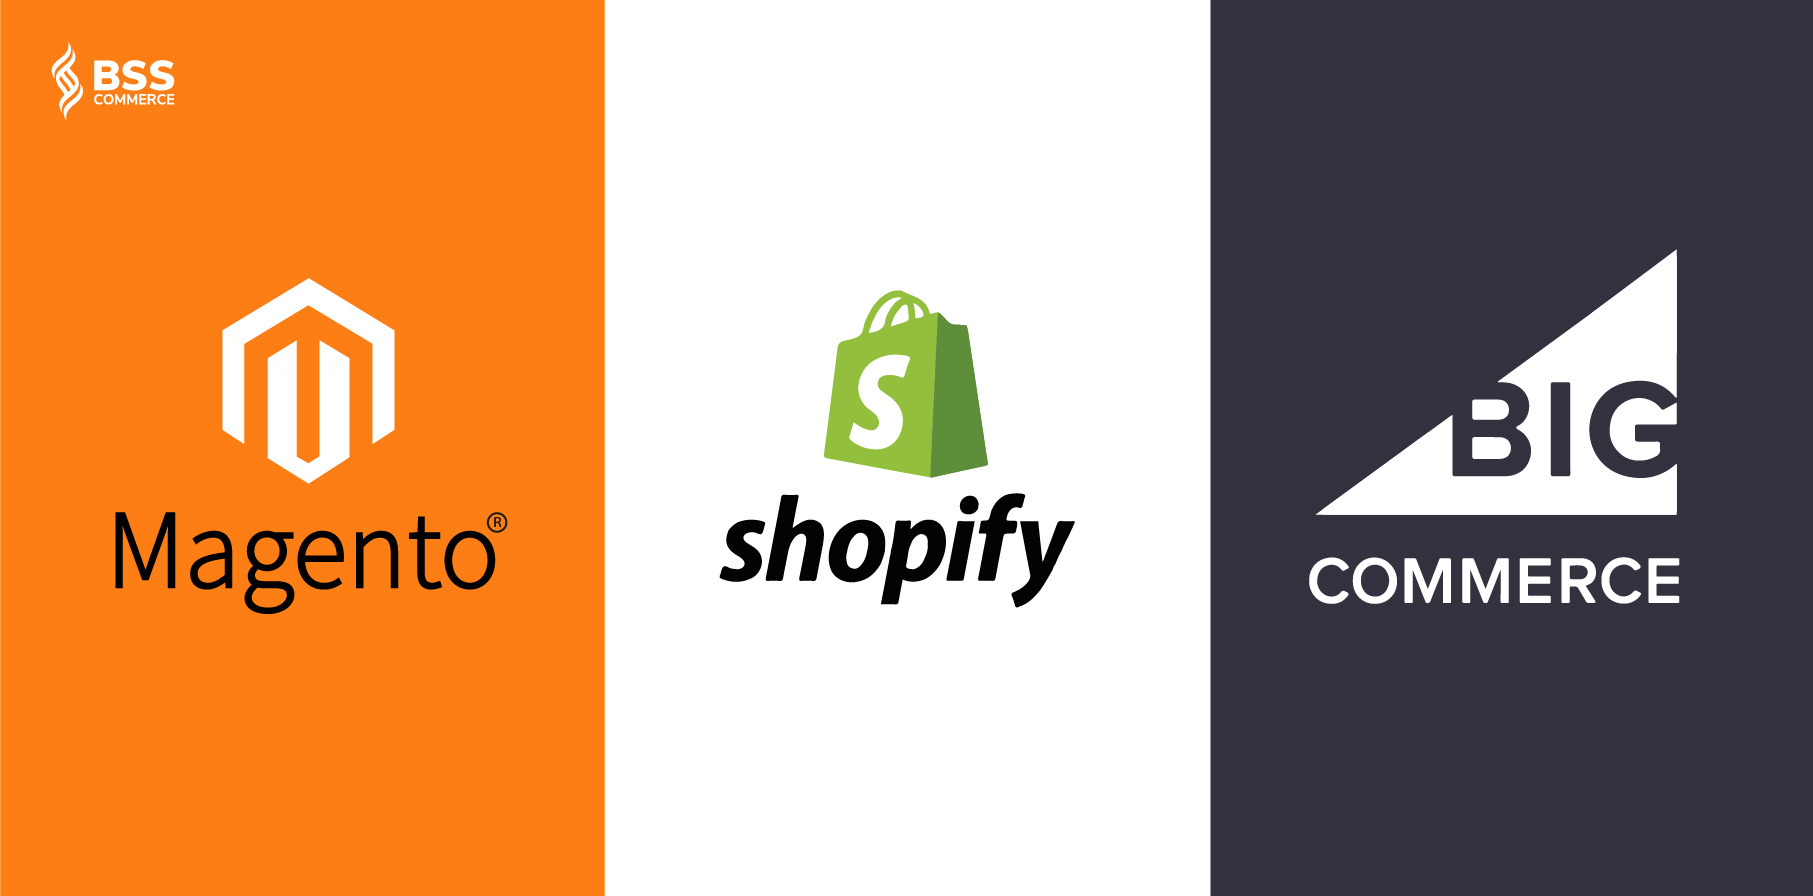 featured-image-magento-shopify-bigcommerce